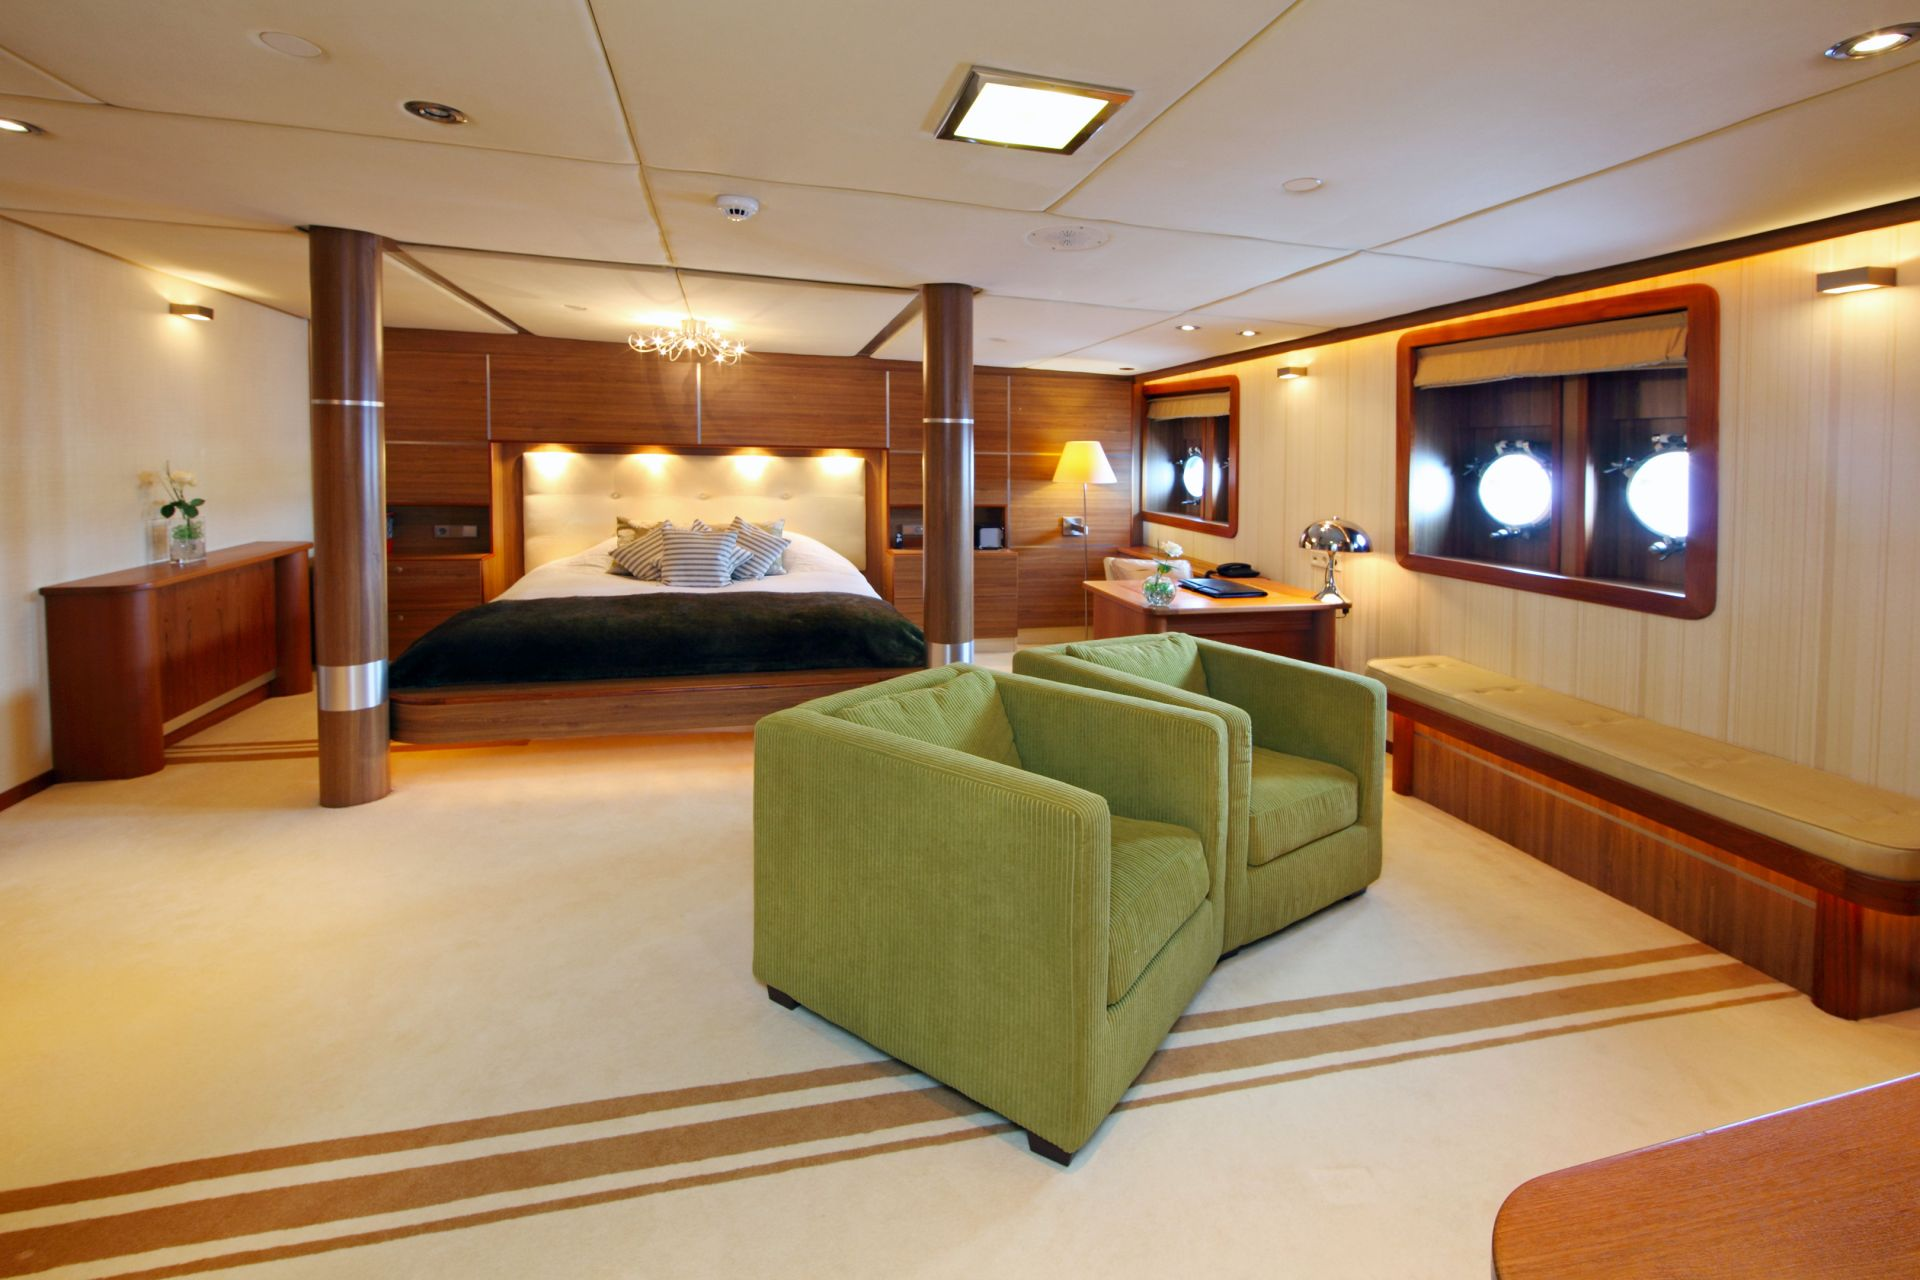 Accommodation is spacious with deluxe design